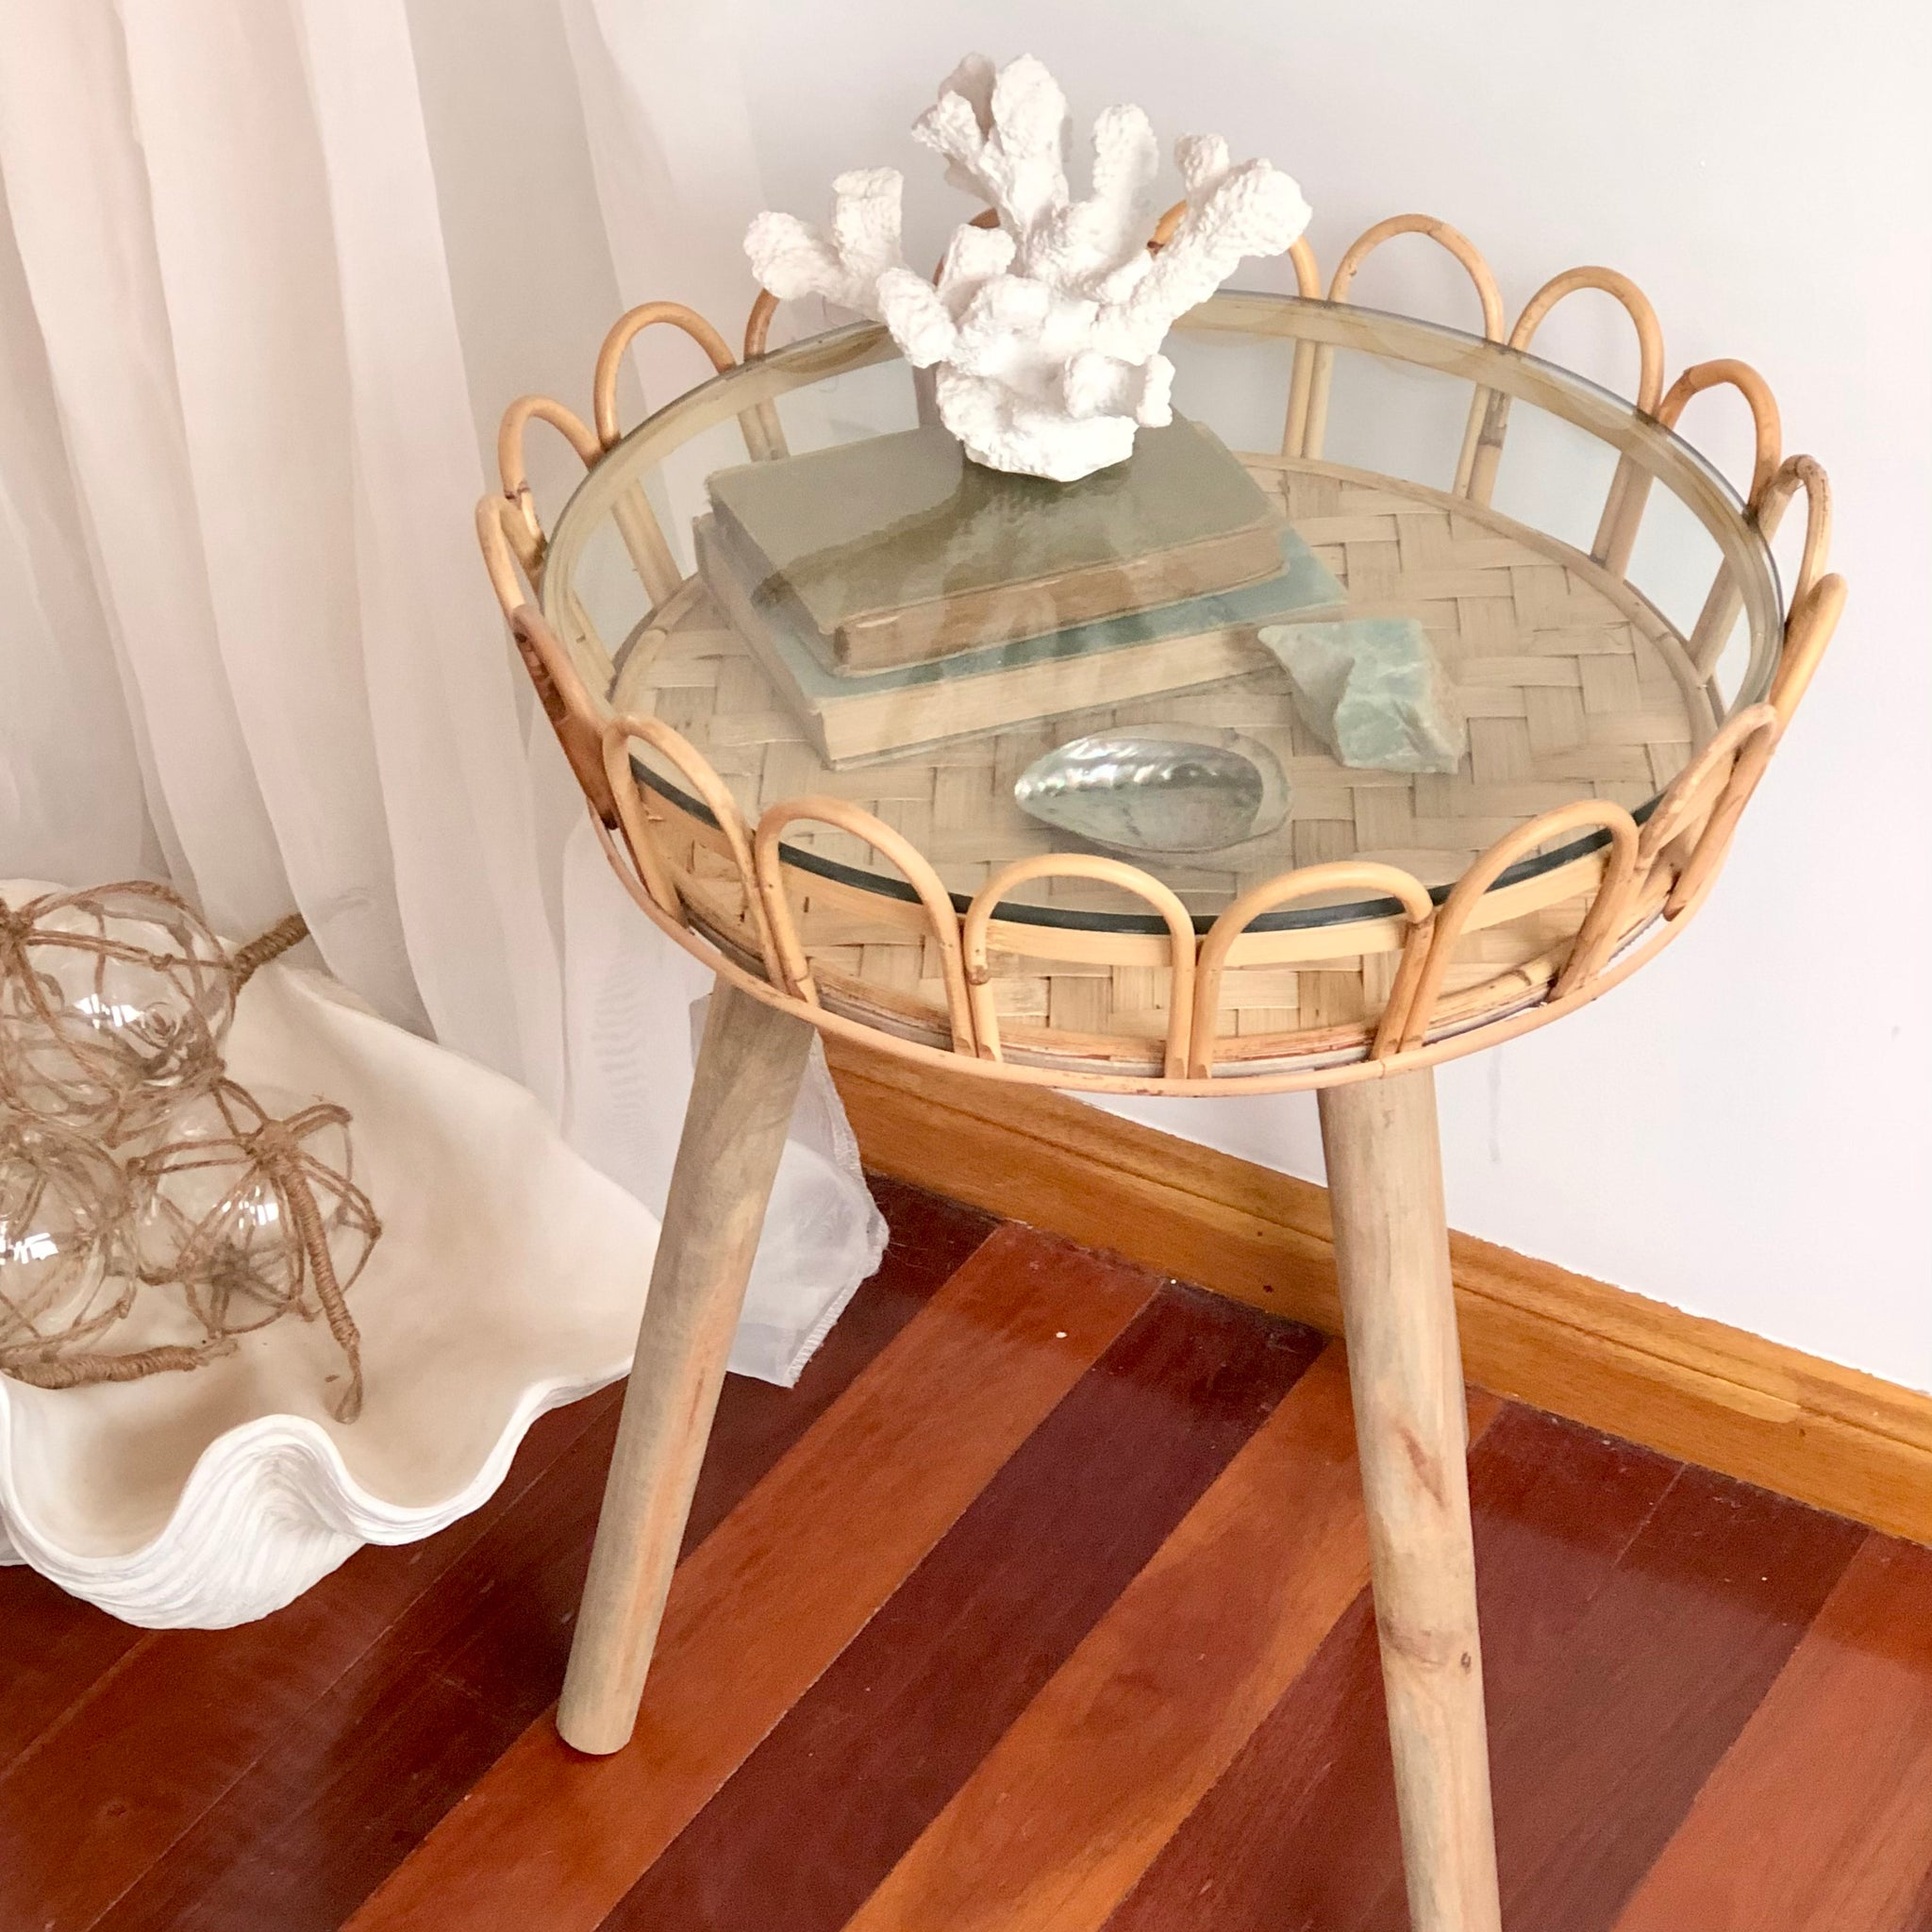 Gift, decor and crystal shop Australia: Island side table - Glass top, bamboo, rattan + wood table